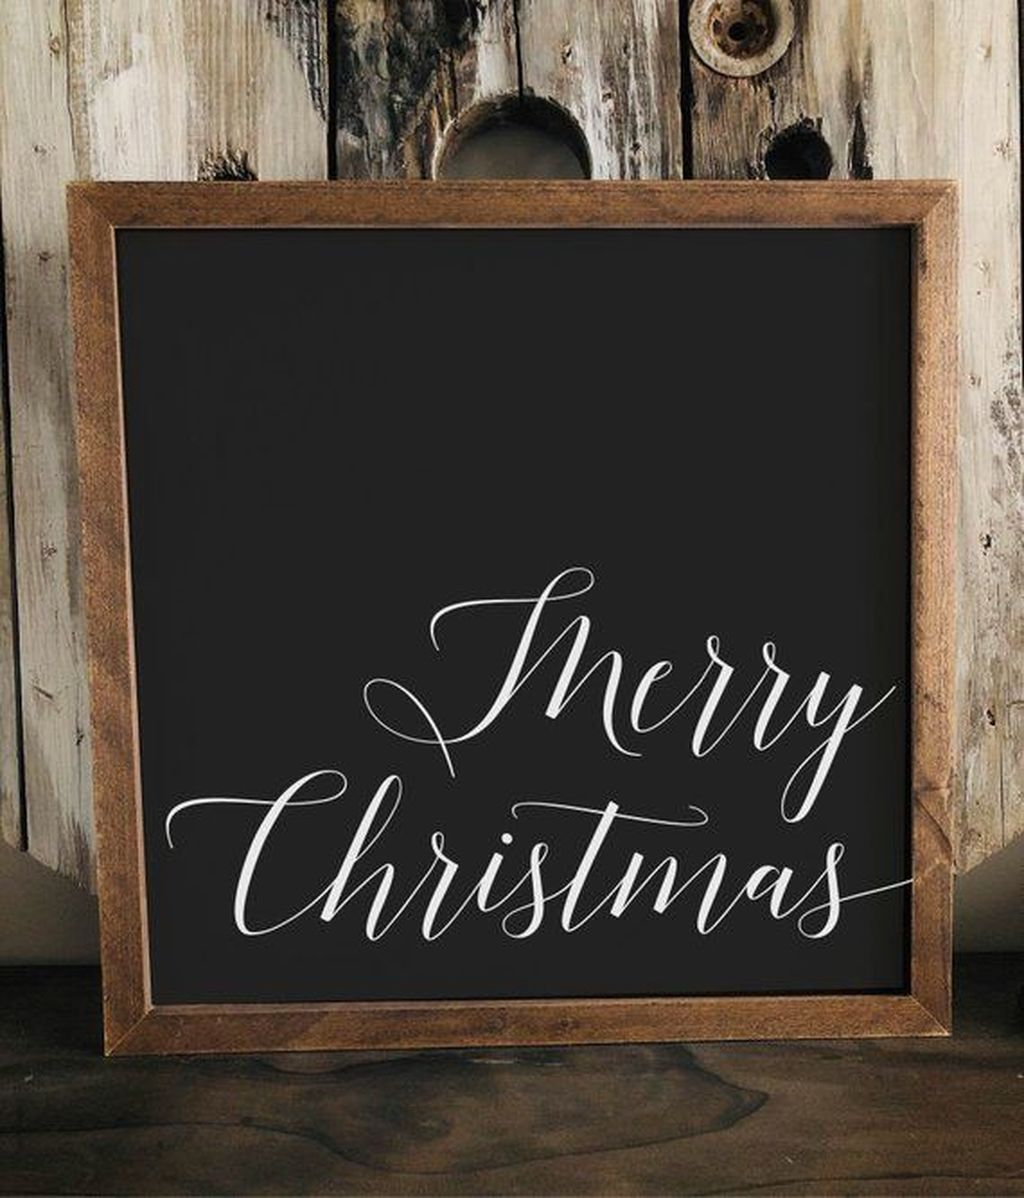 Inspiring Christmas Chalkboard Signs Design Ideas 07